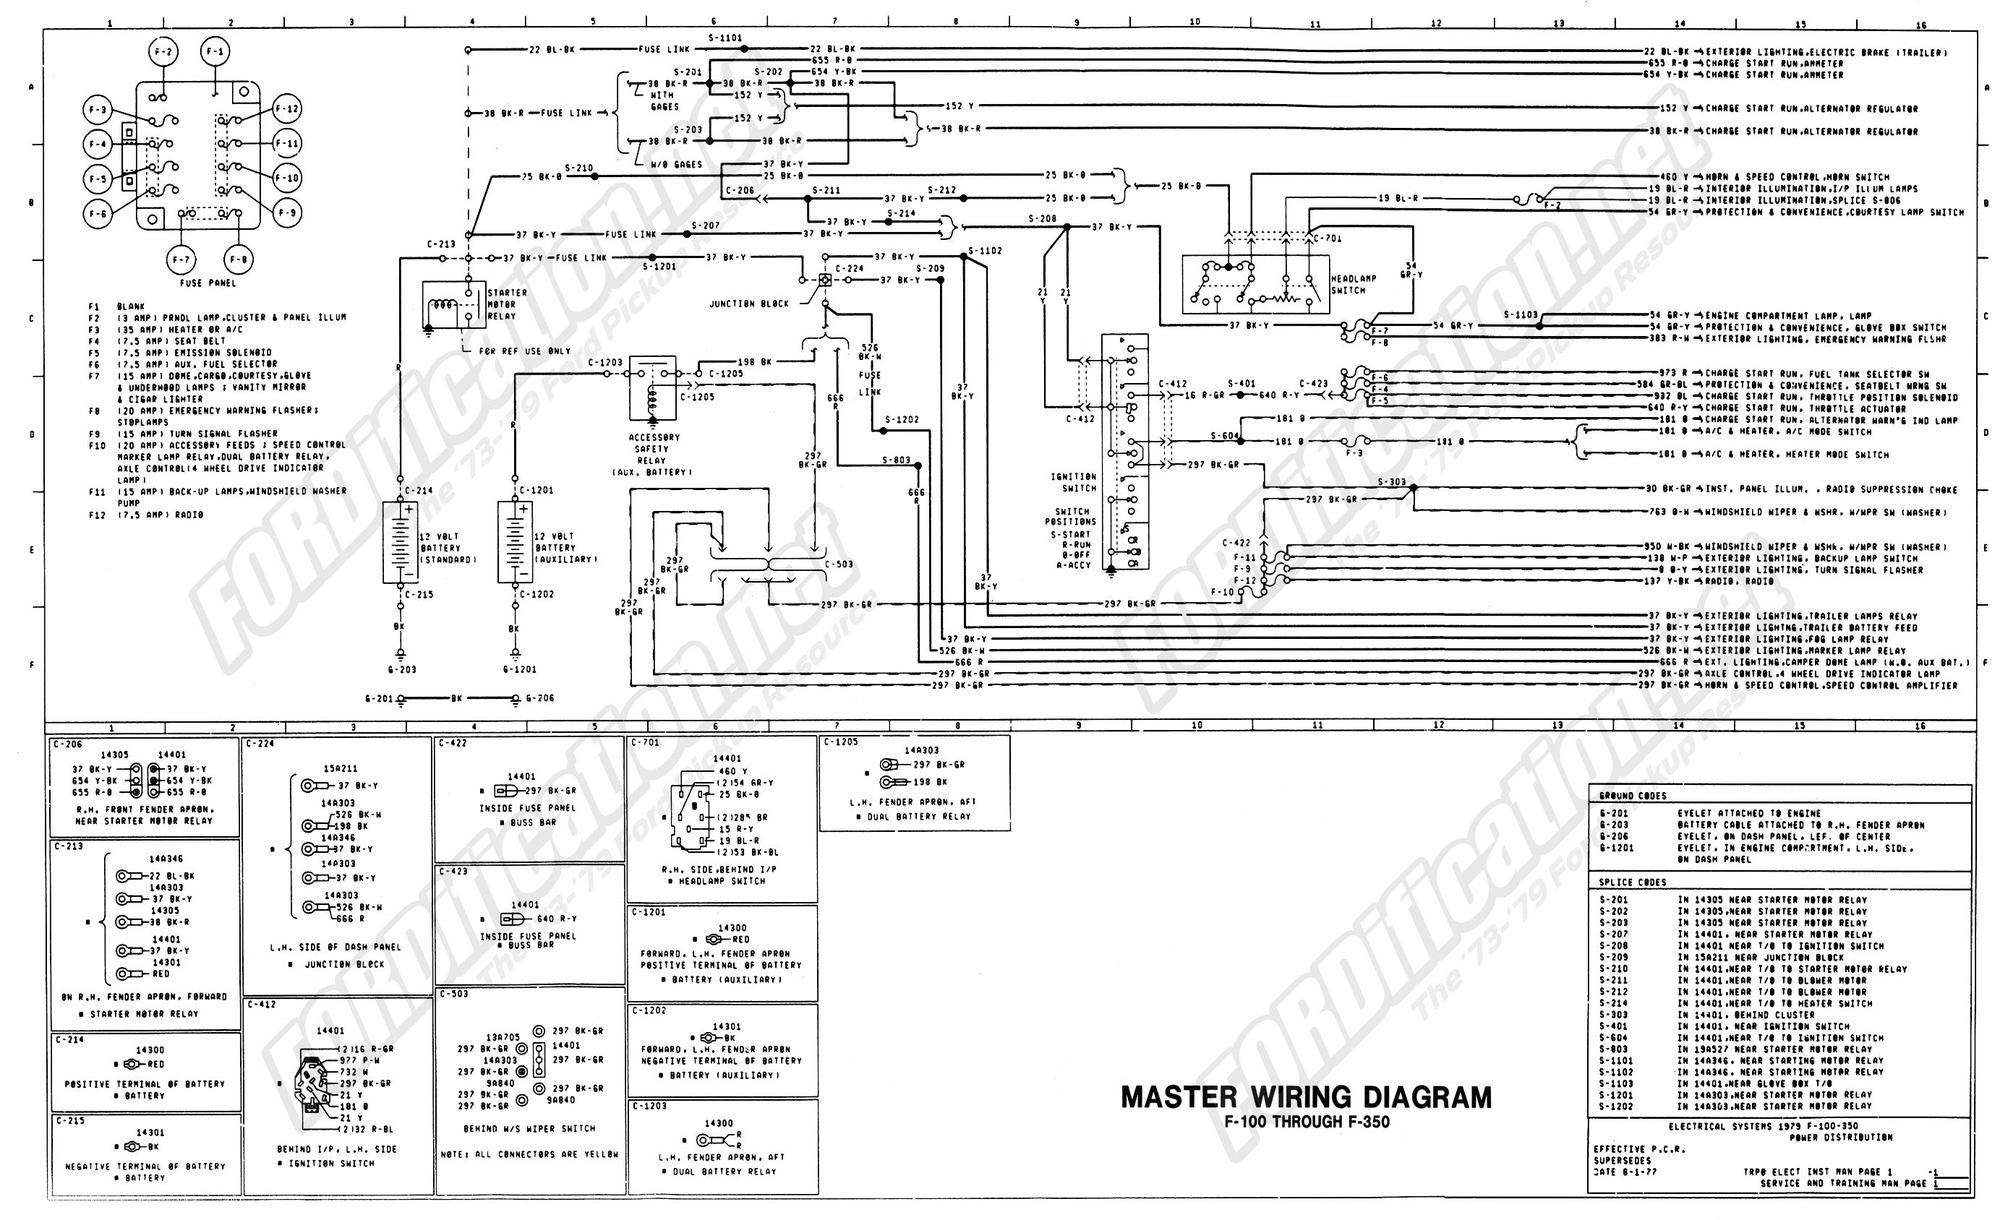 electrical wiring diagram ford f650 squier p bass ignition switch html imageresizertool com